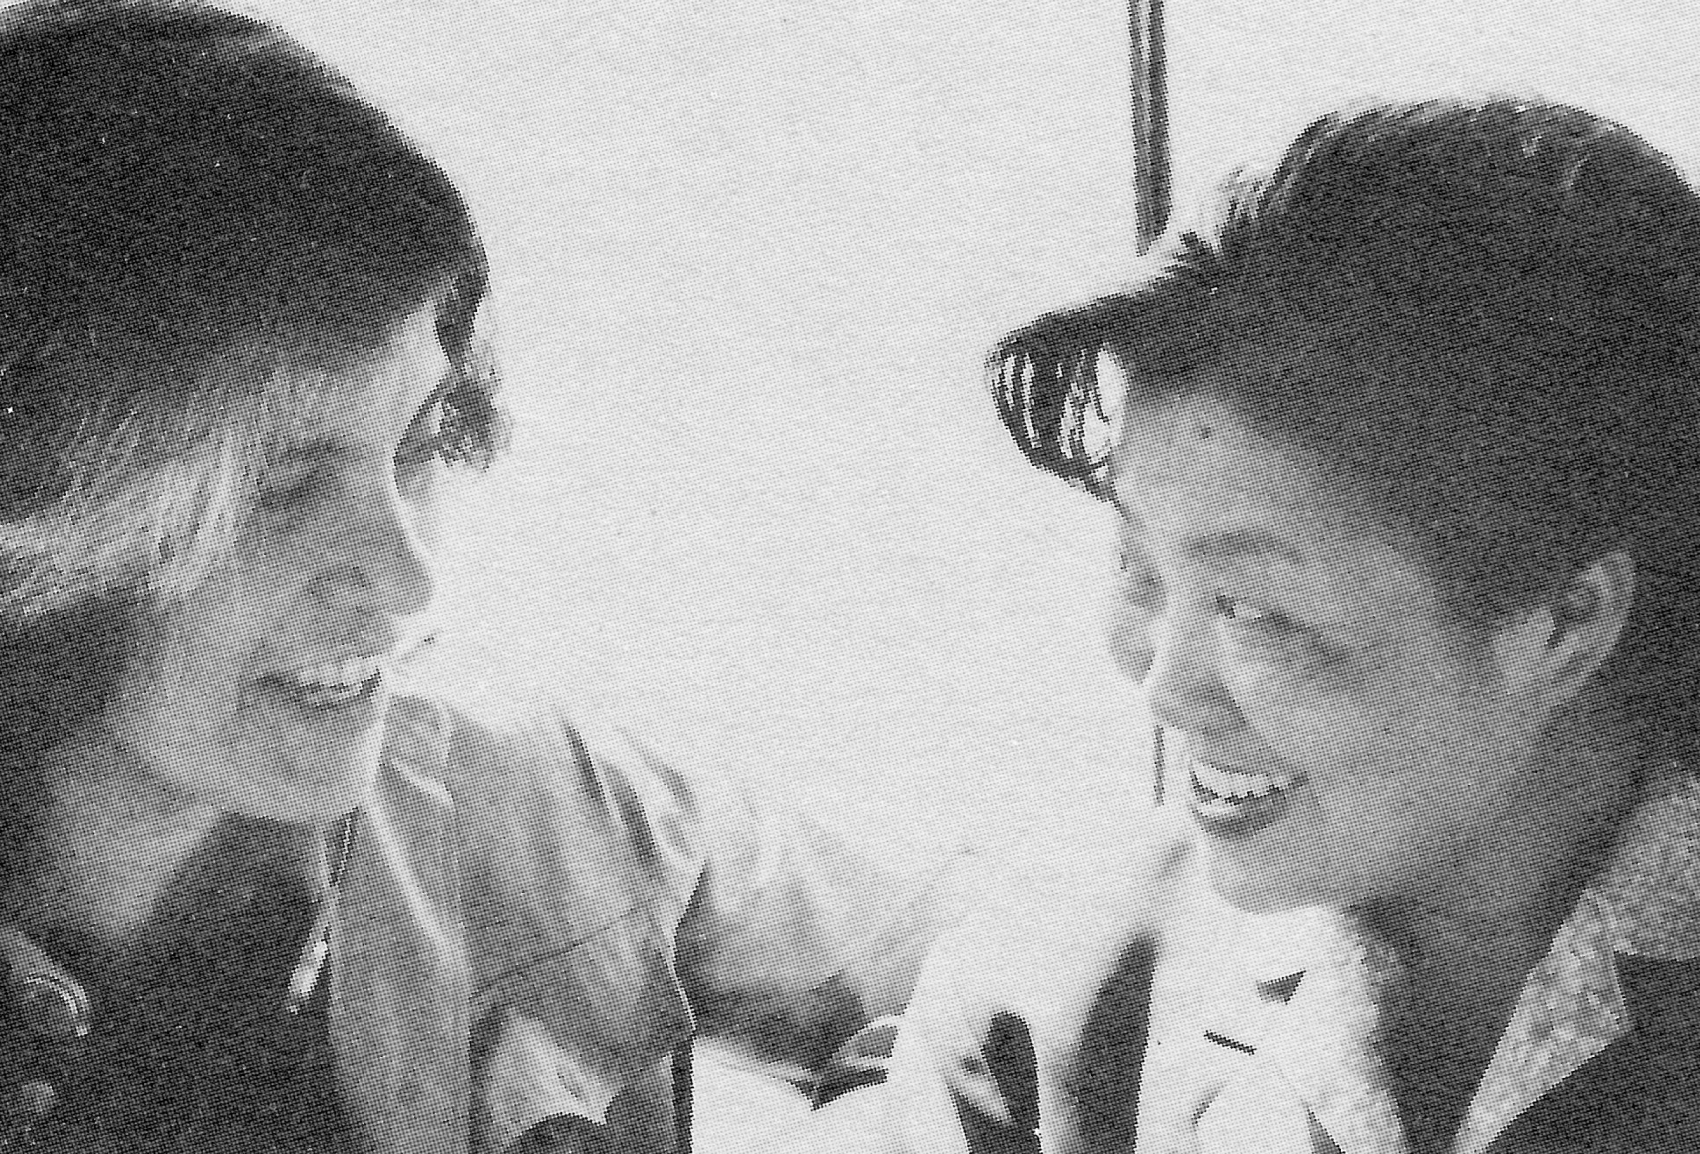 Writer Susan Sontag with He Huaren, staff member of the China Federation, during a boat tour of the West Lake, Hangzhou